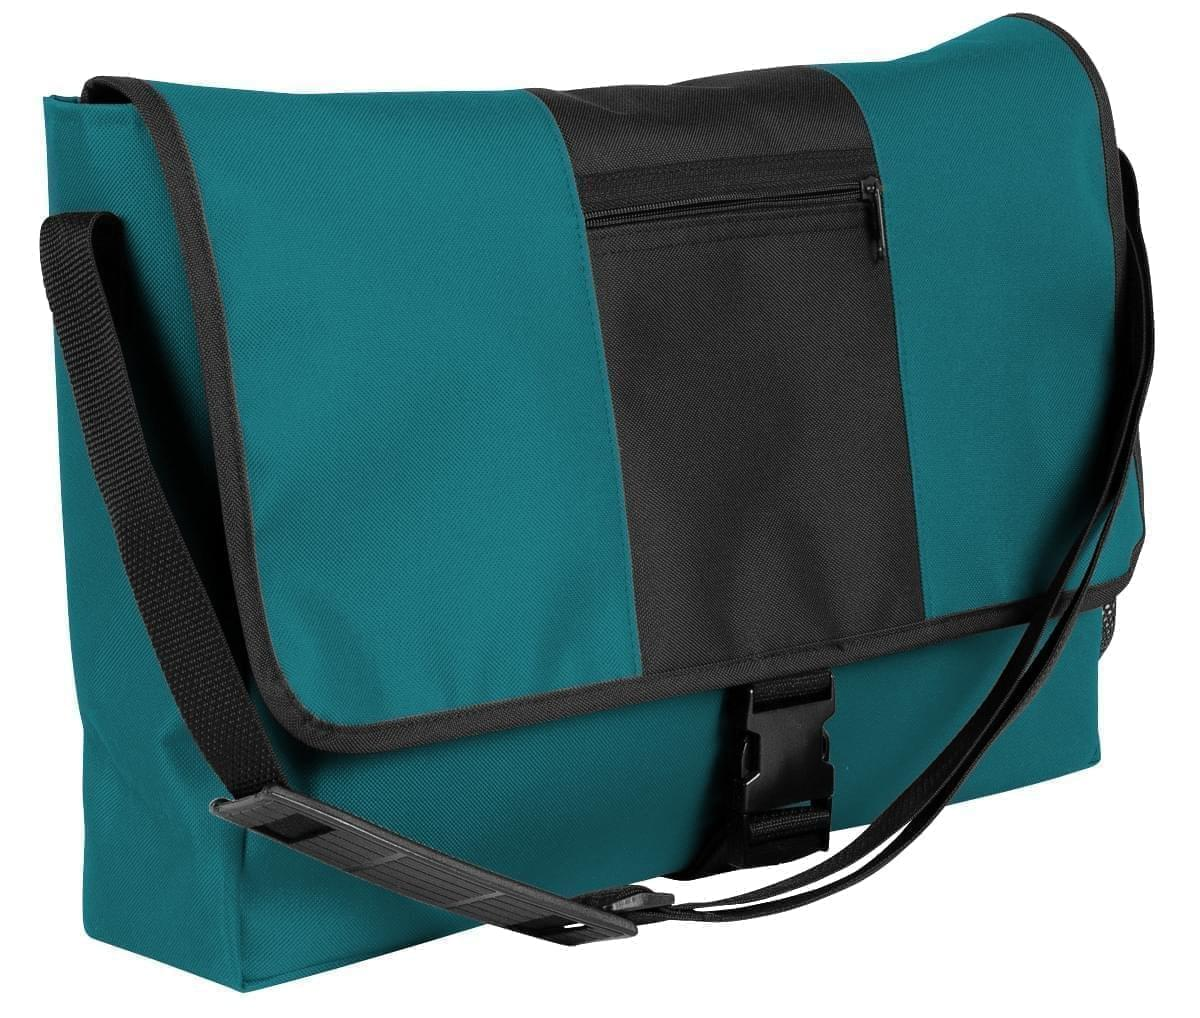 USA Made Nylon Poly Dad Shoulder Bags, Turquoise-Black, OHEDA19A9C